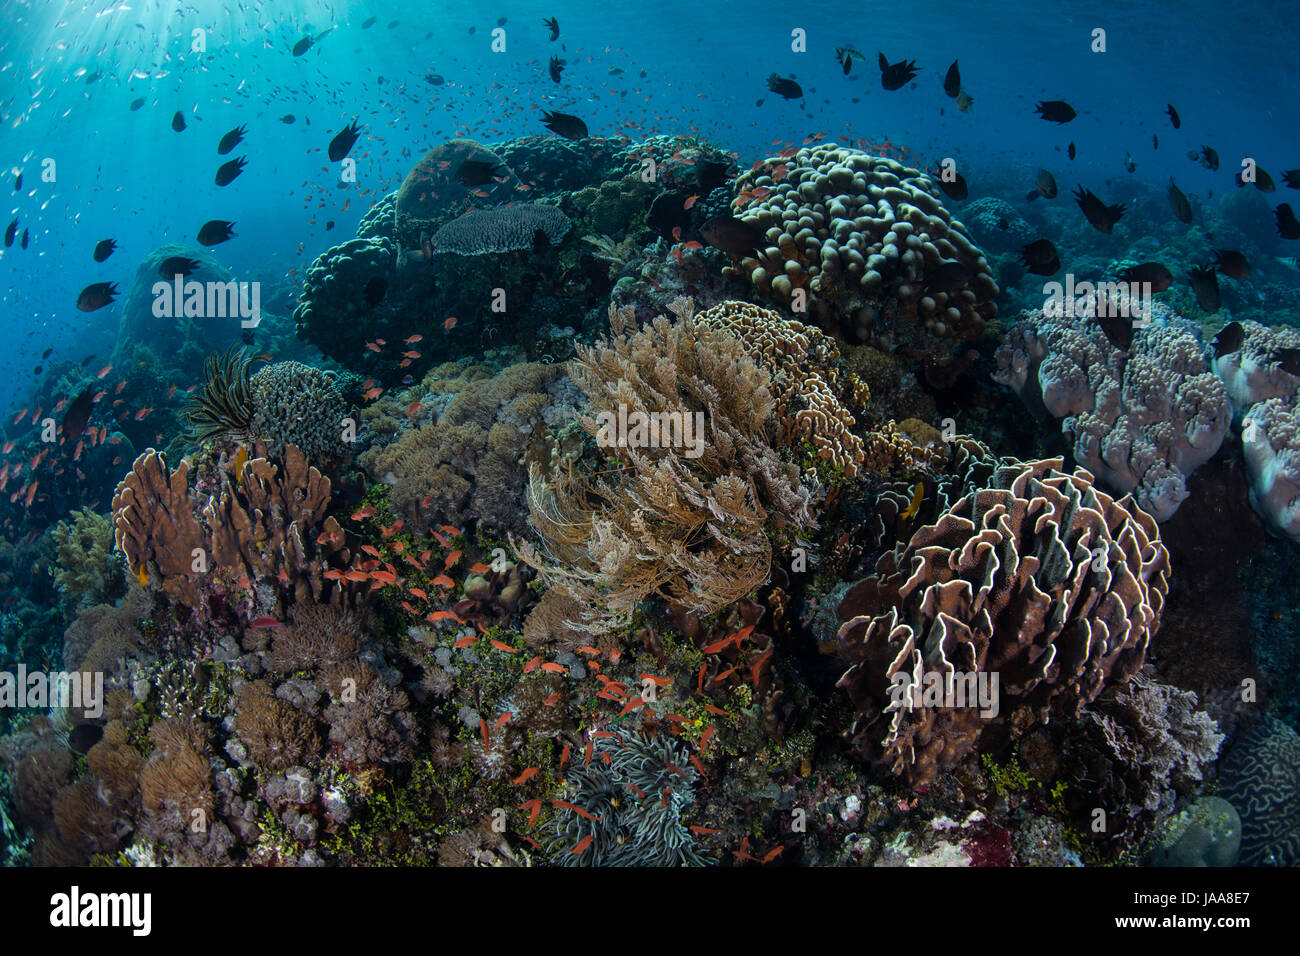 Tropical reef fish swarm over a gorgeous coral reef near Alor, Indonesia. This region harbors extraordinary marine - Stock Image